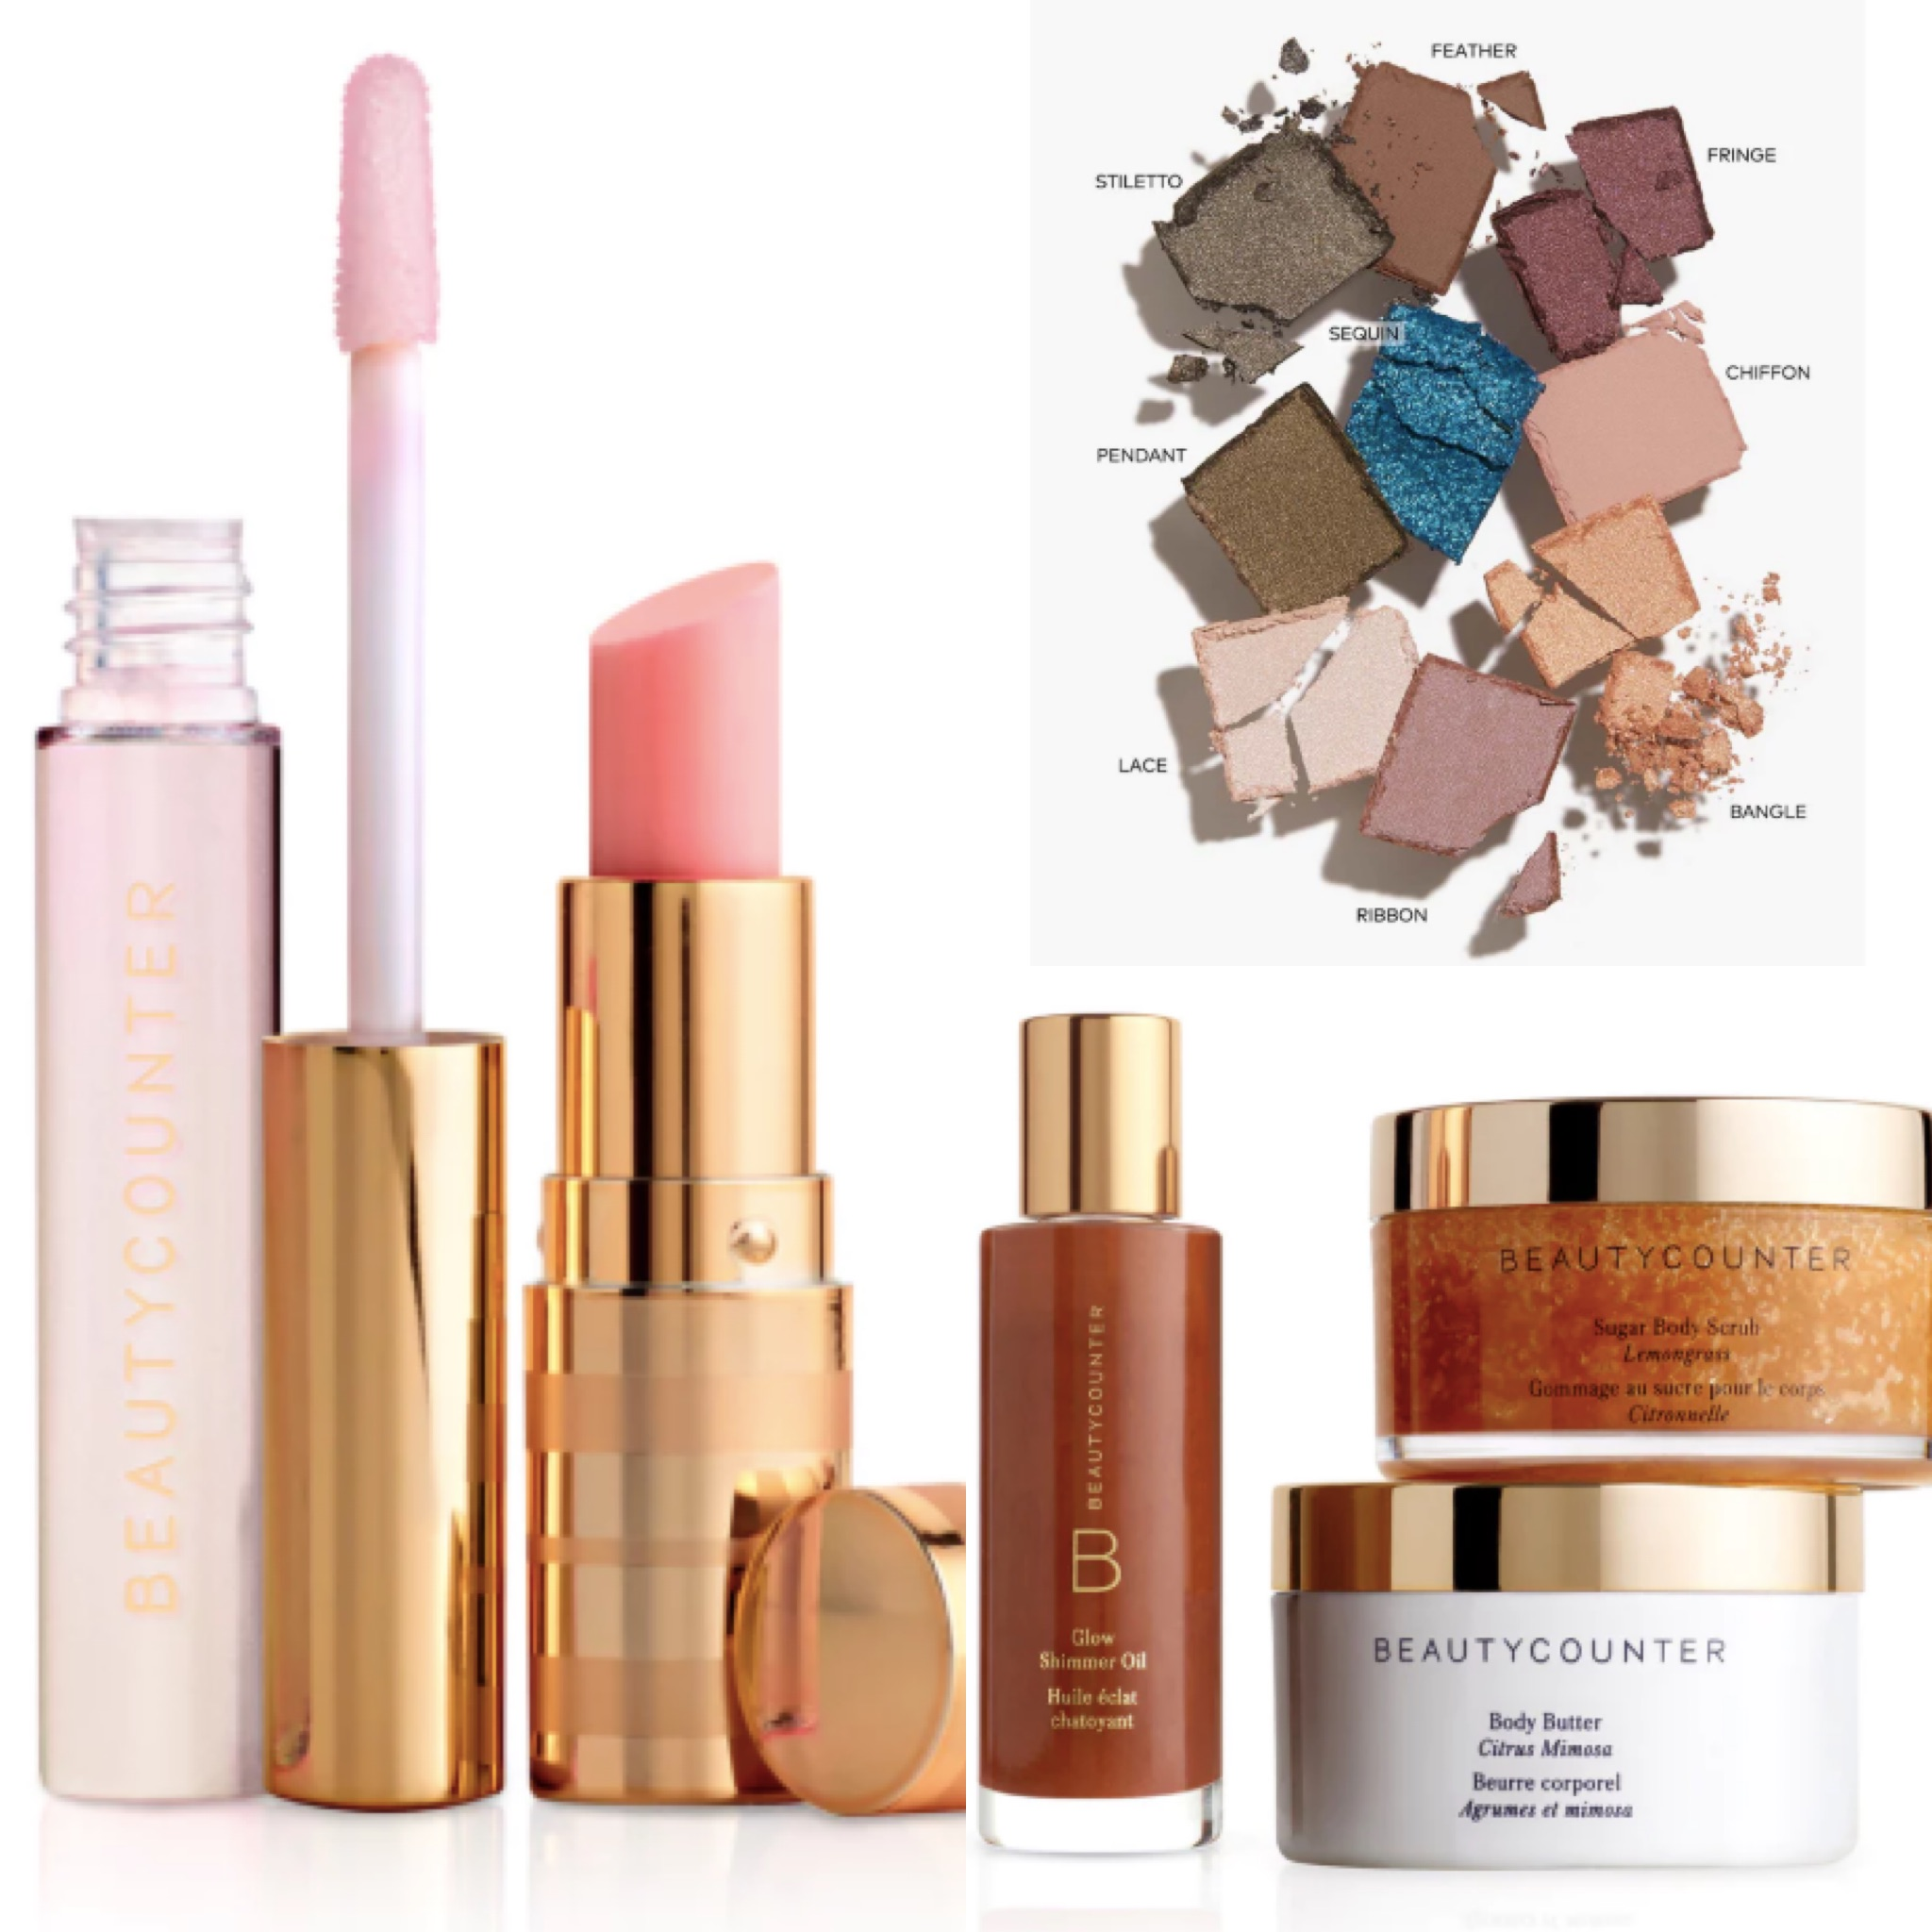 In my dream world we can trust our products and foods to nourish and protect us. For now, find brands you trust and stick with them. I love Beauty Counter's Products.  Their tinted moisturizer is light and doesn't run into your eyes when you sweat. Their lipsticks are long lasting and don't dry out and their eye shadows have the perfect consistency and stay where you put them. And completely toxin free. They have incredible bath products for kids and grown ups, too!